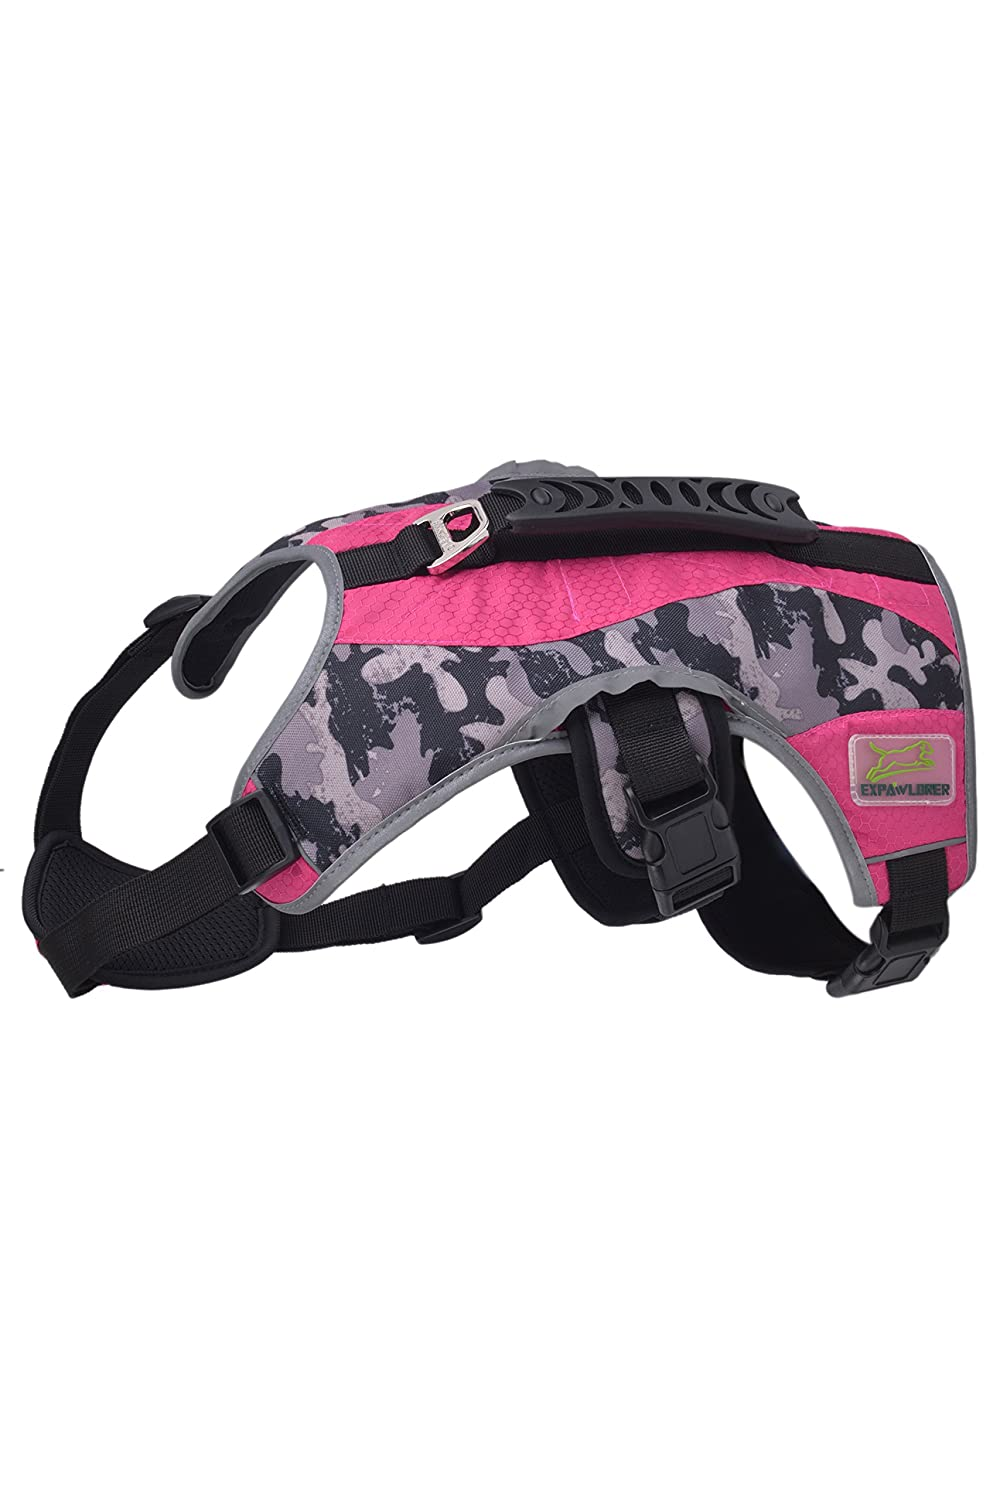 Pink XL:petto circonferenza 26.7 Pink XL:petto circonferenza 26.7 BeMiracle Escape Proof Dog Harness Air Mesh Reflective 5 Points Adattamento Pet Vest Multi -Use Harness con Handle Handle for Dogs Hiking, Walking &B &&B